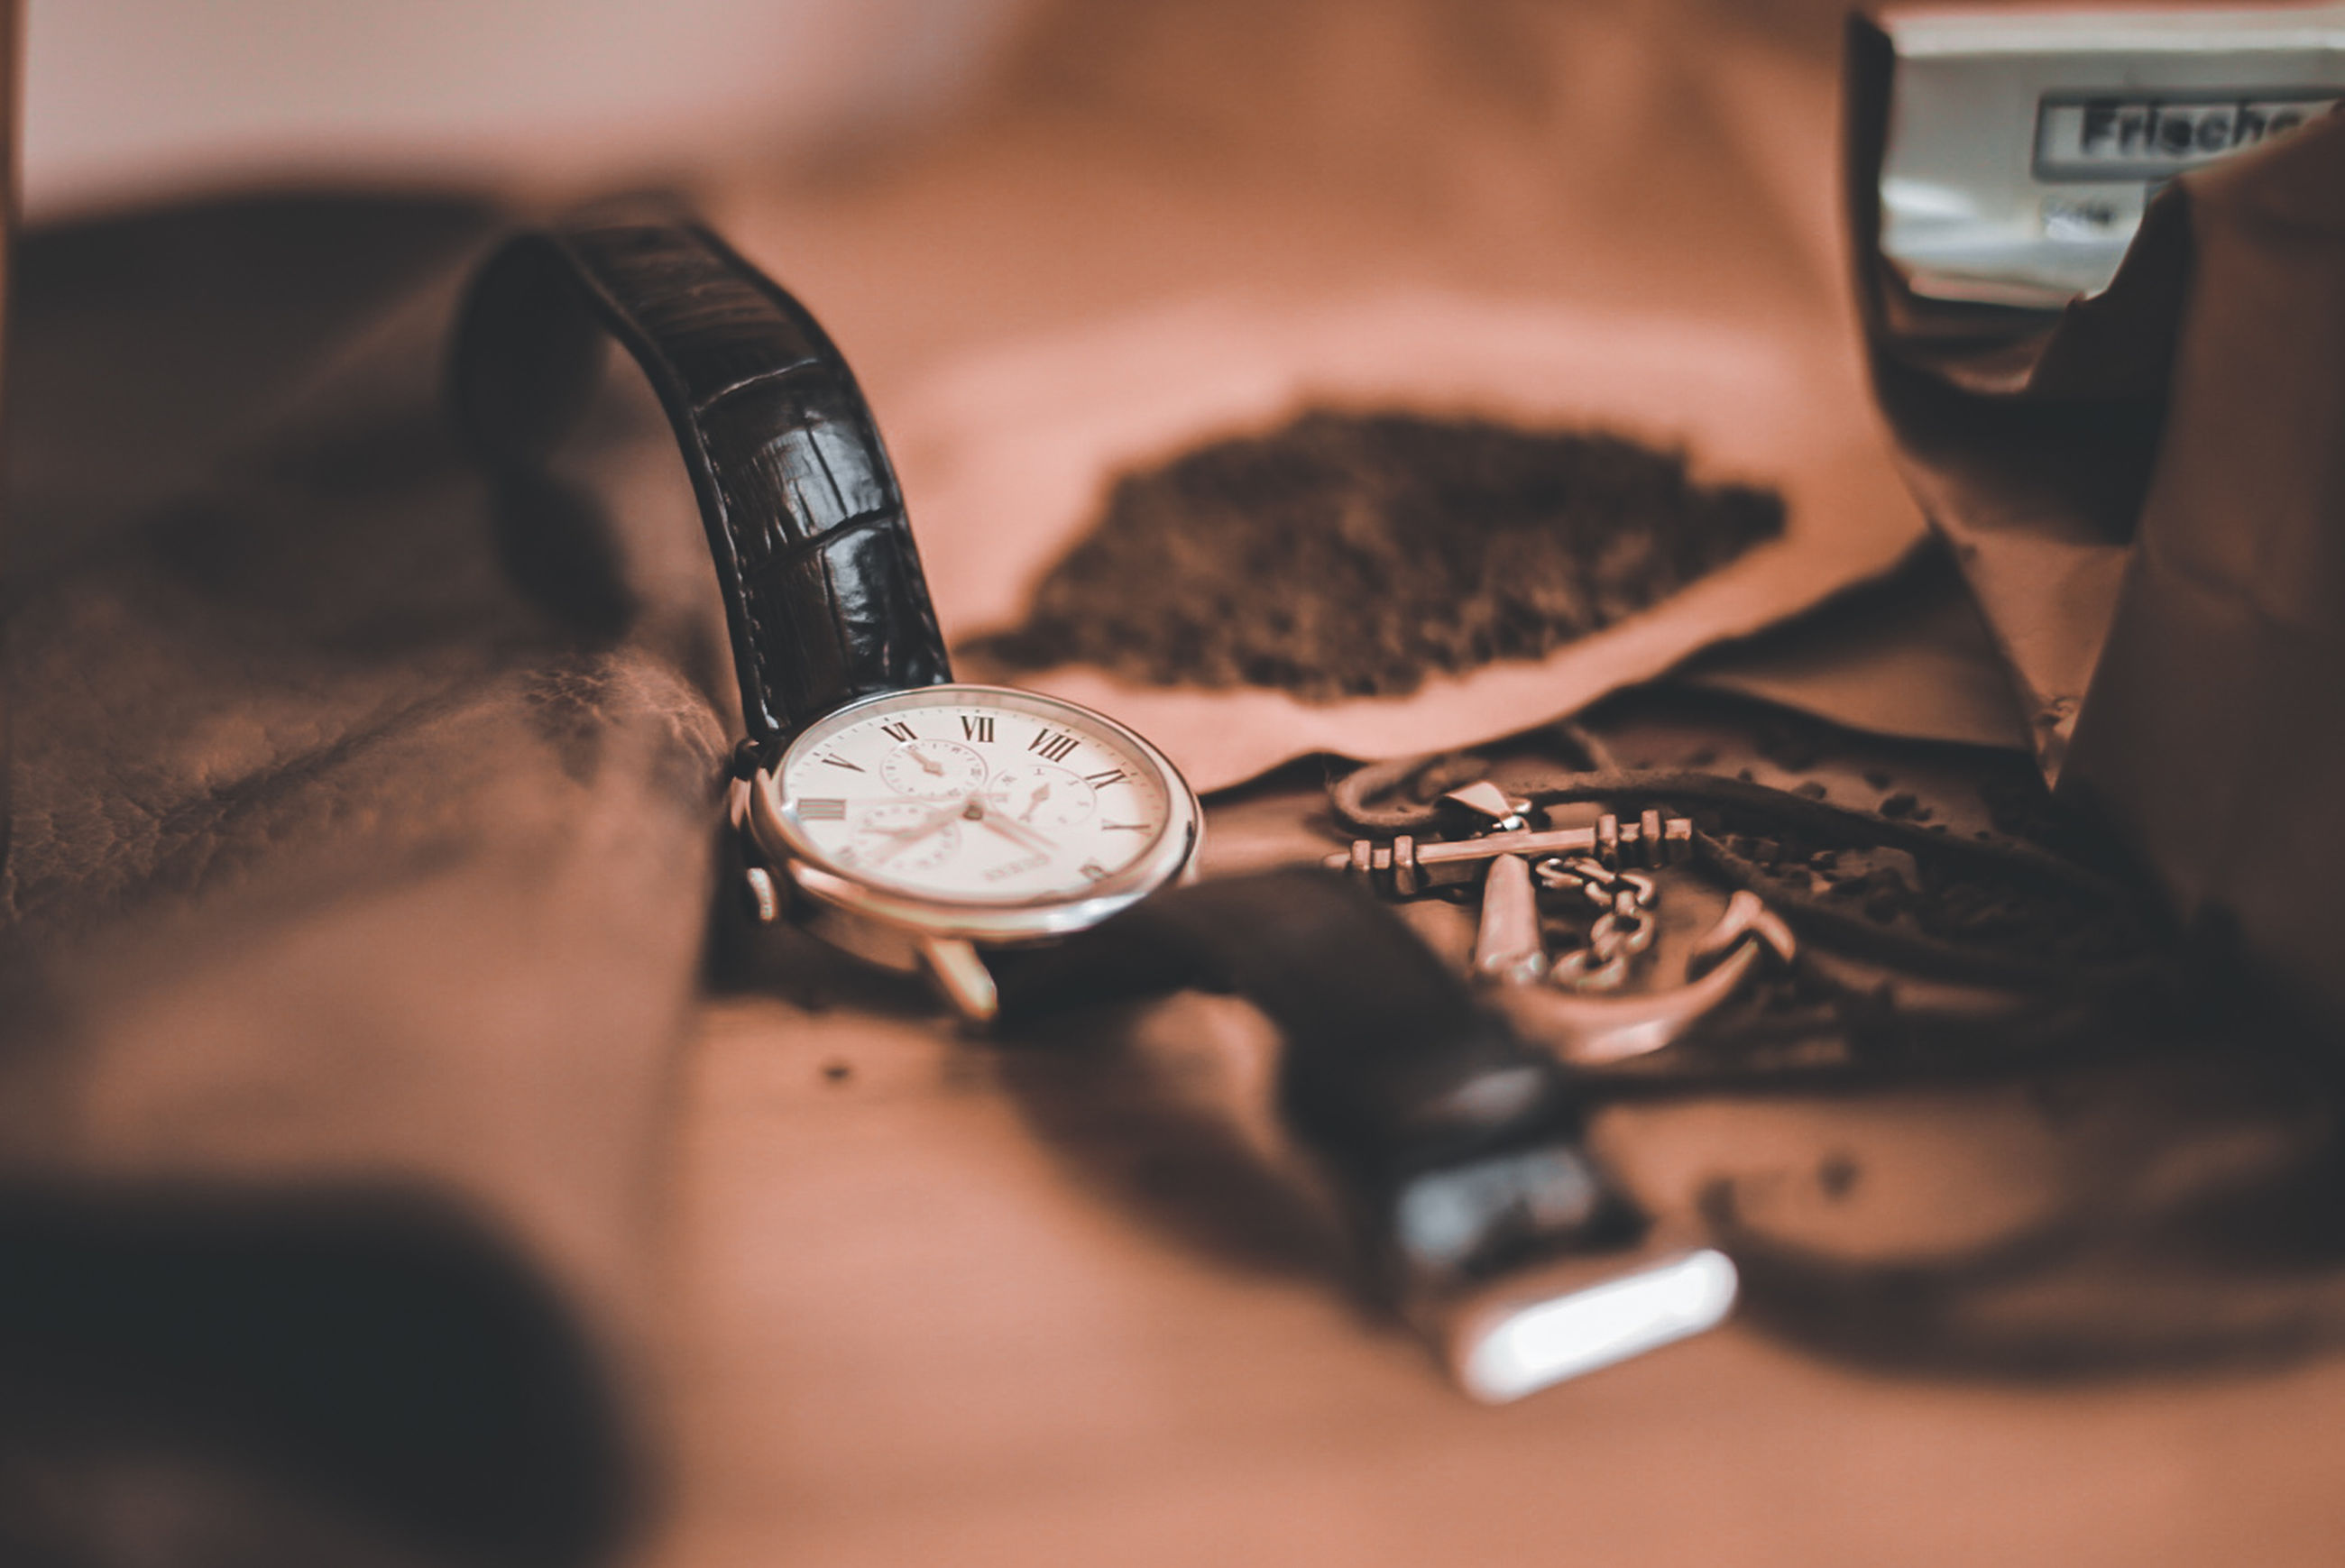 black, watch, clock, hand, indoors, time, glasses, selective focus, close-up, brown, wristwatch, white, table, still life